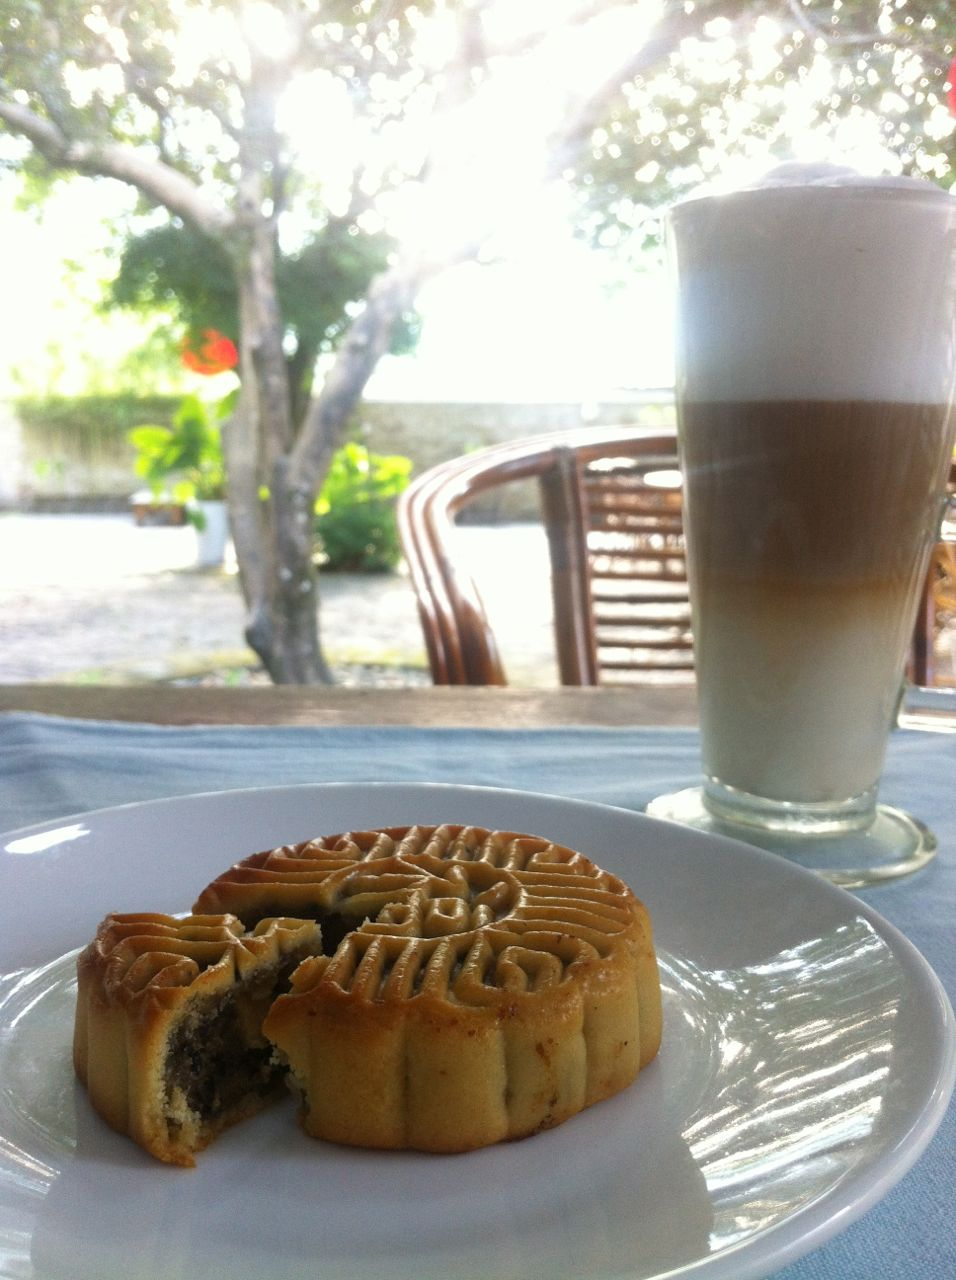 Enjoying traditional mooncake with traditional latte... Happy Full-Moon Festival!